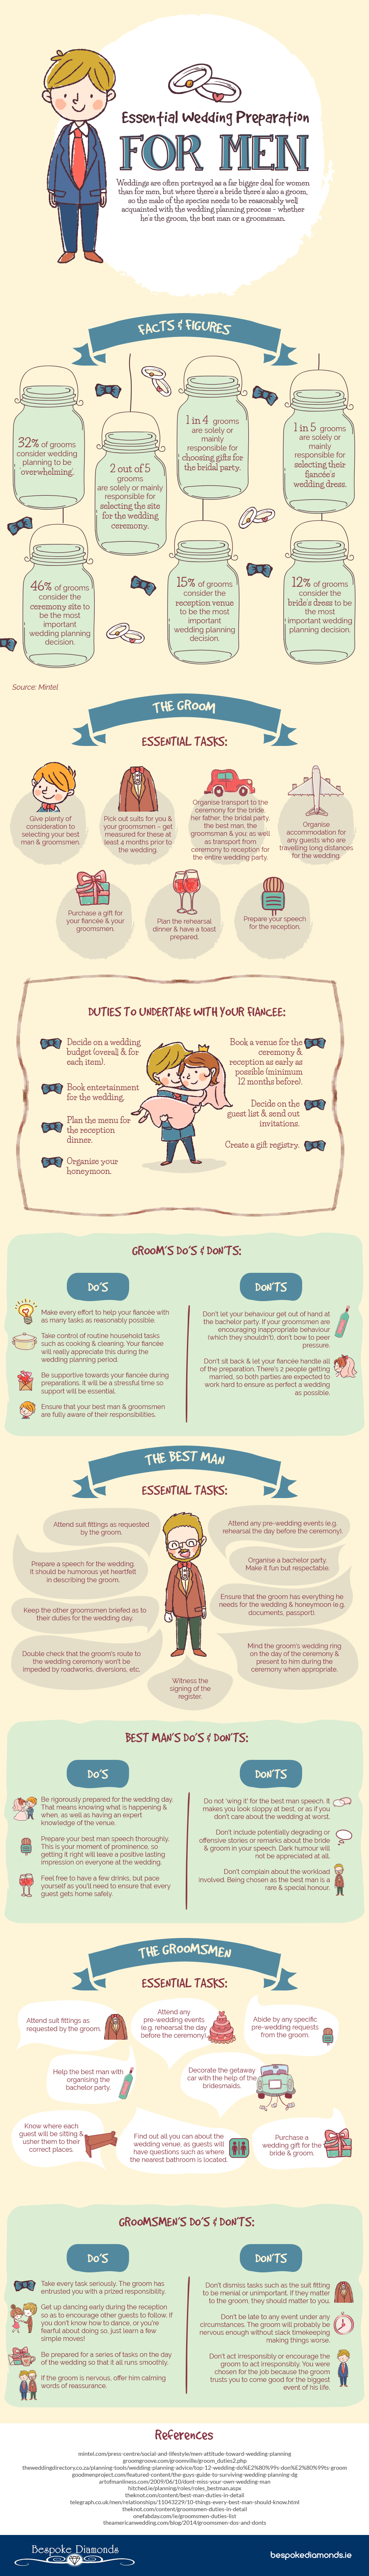 Essential Wedding Preparation for Men #Infographic